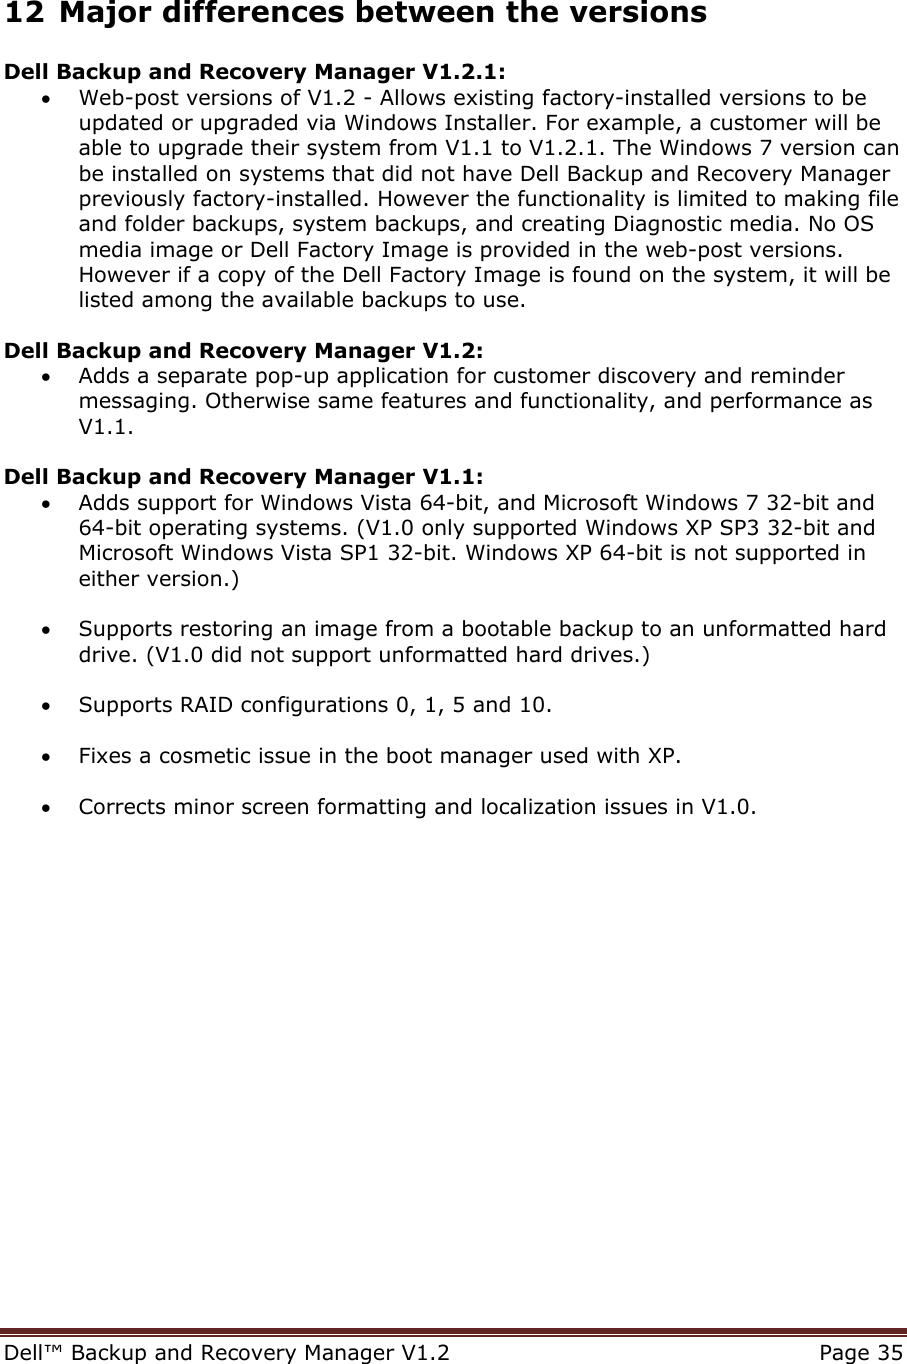 Dell bckup and recvry mangr v1 2 Backup Recovery Manager